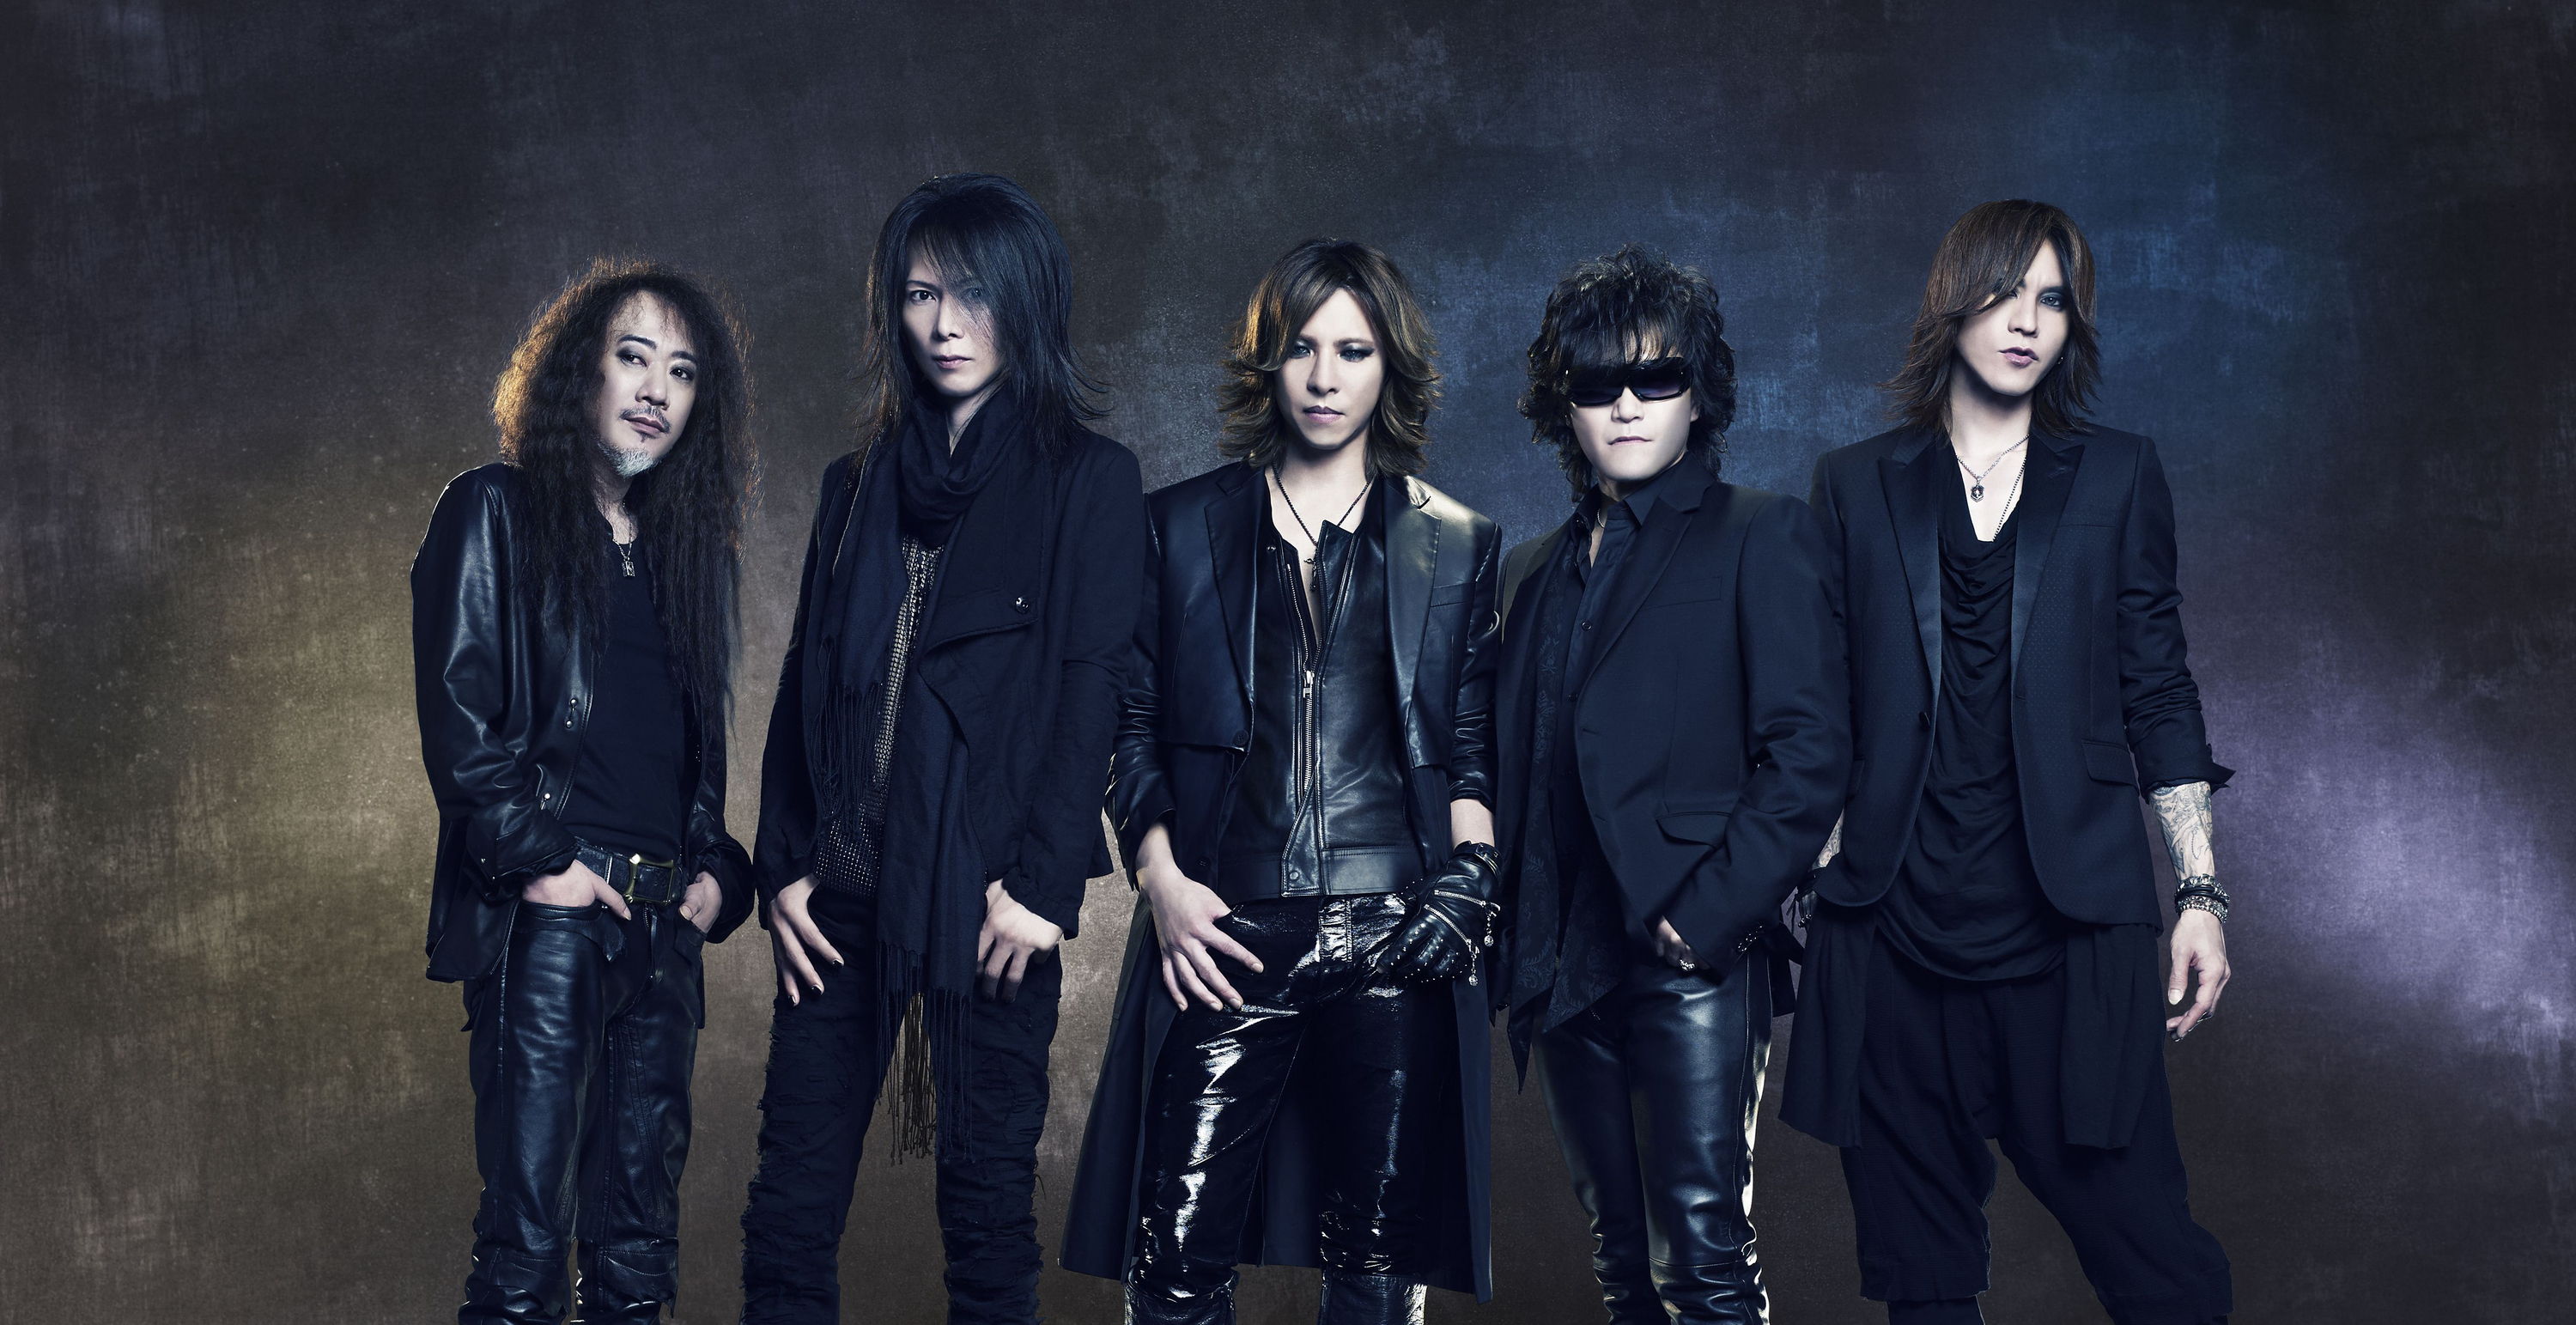 The story of visual kei